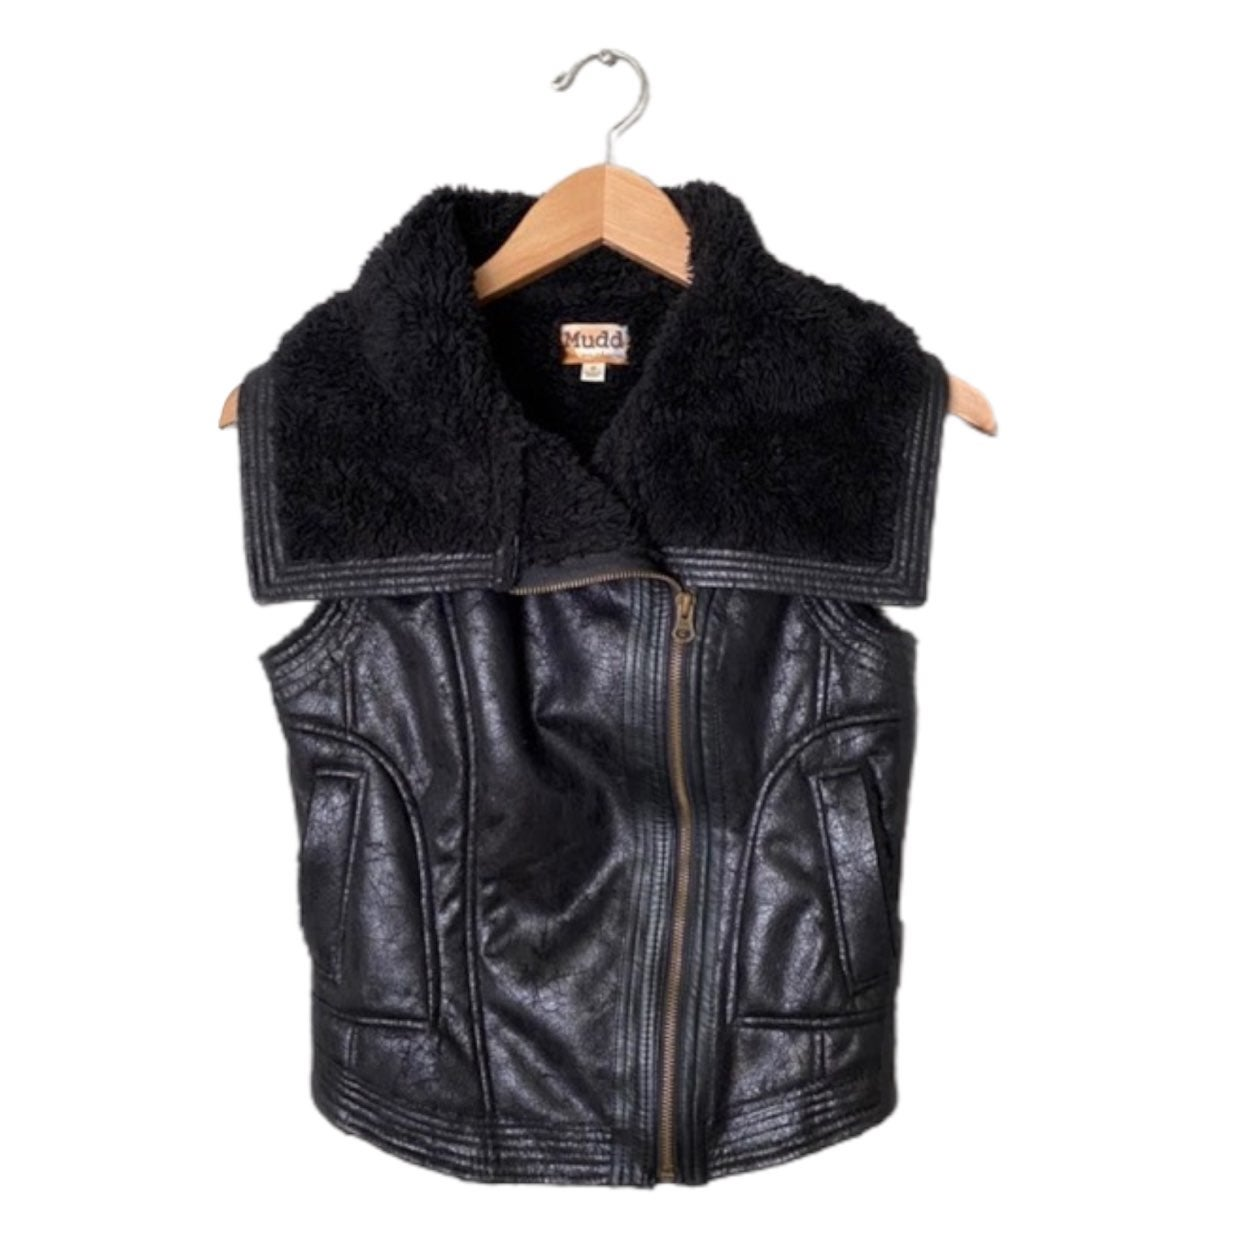 Mudd Black Faux Fur Leather Biker Vest